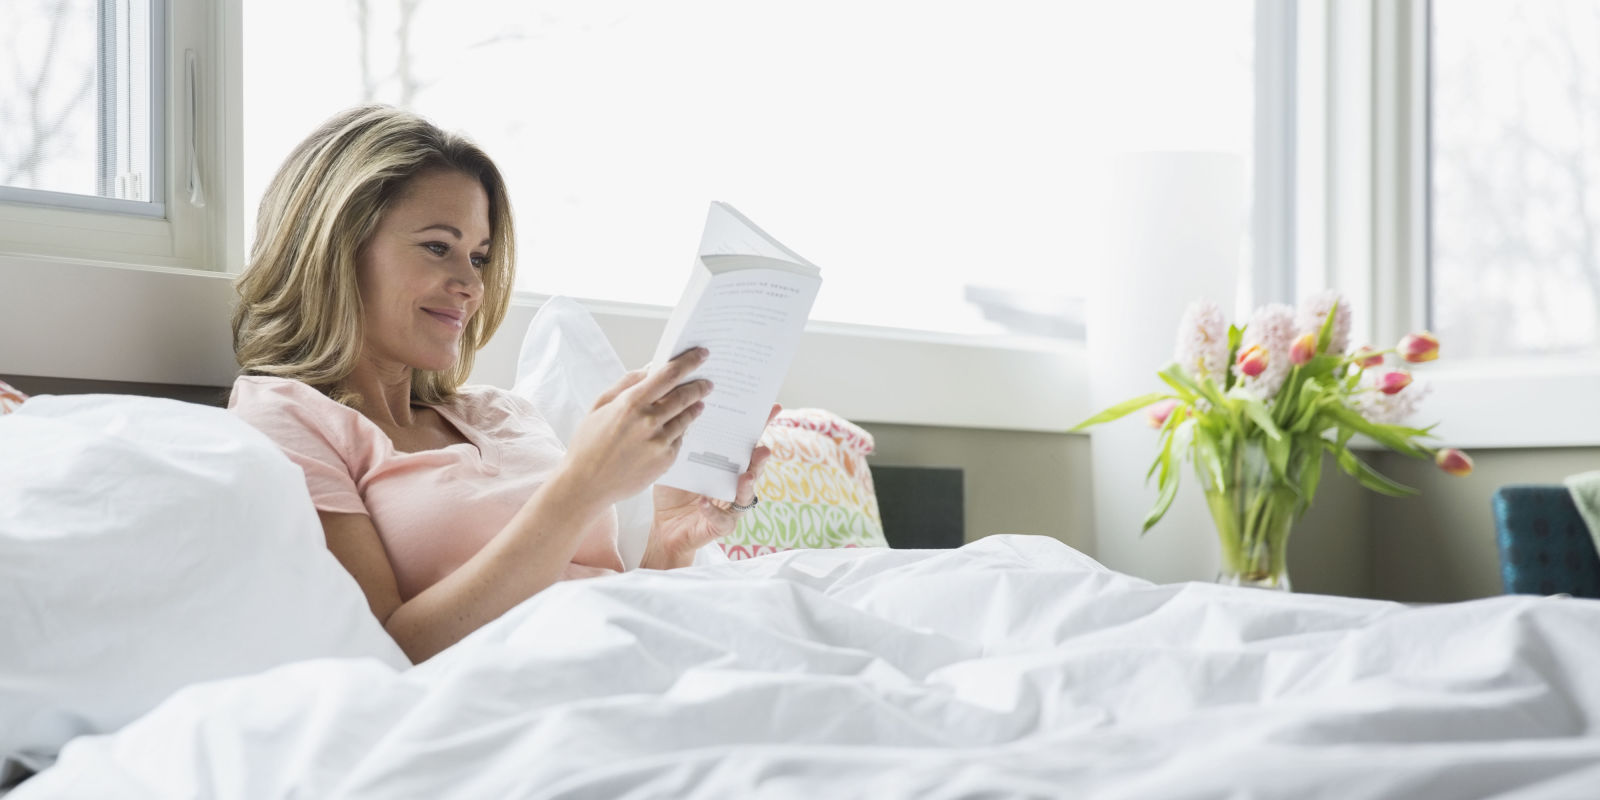 9 Relaxing Books To Read Before Bedtime